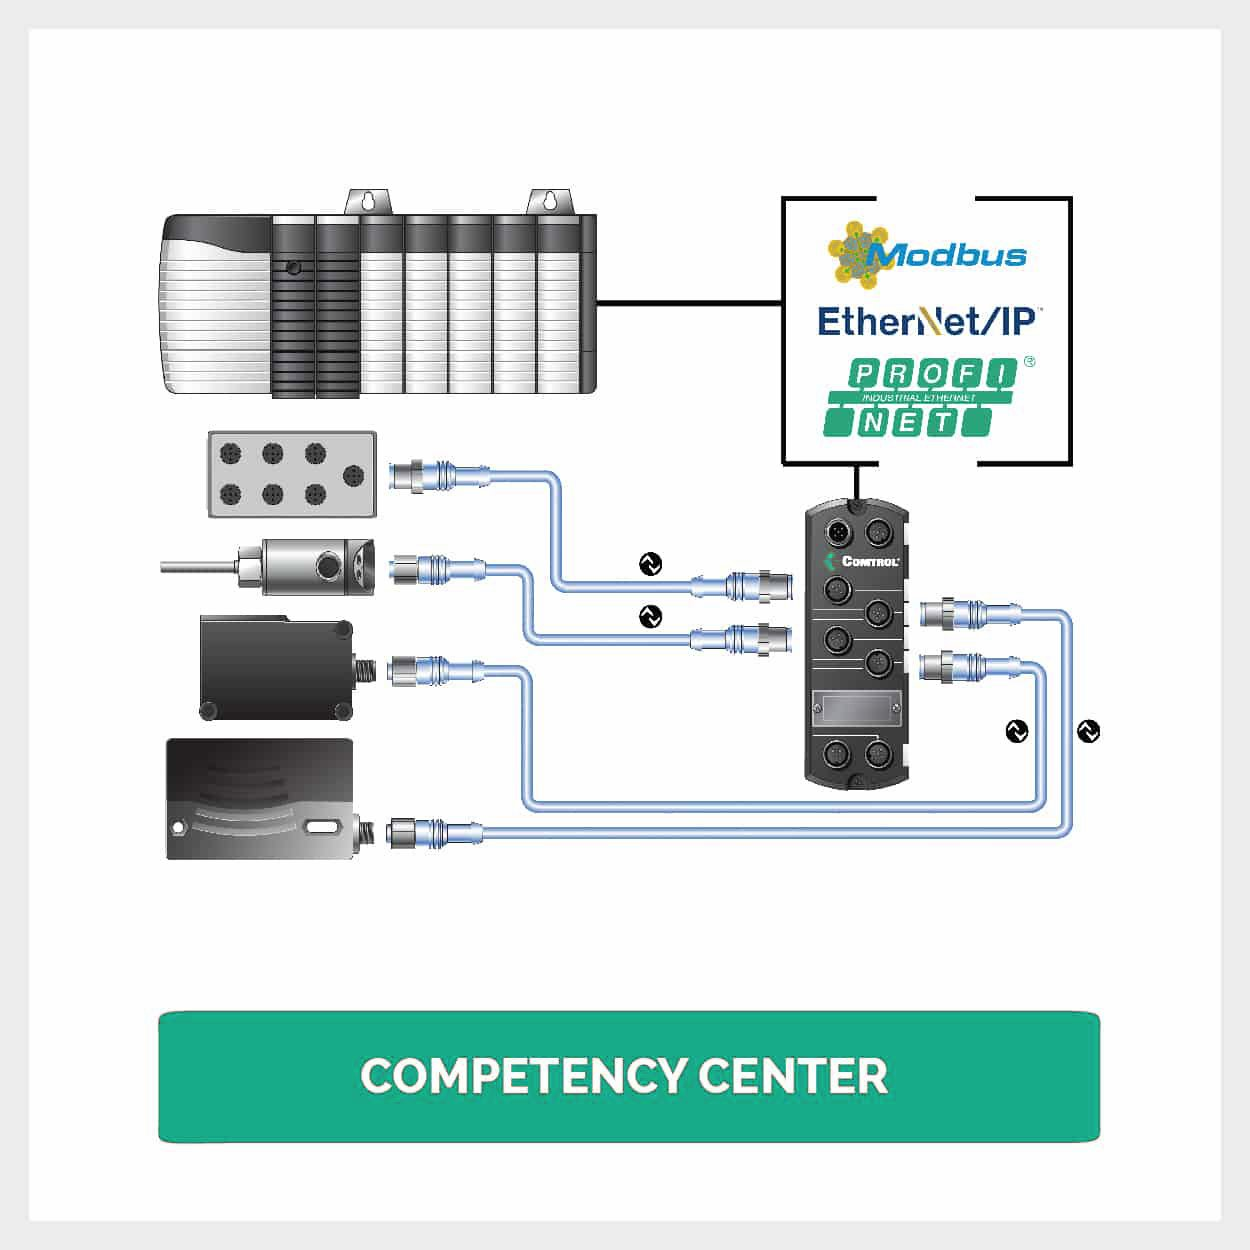 Competency Center2 - IO-Link Master Gateway Modbus TCP